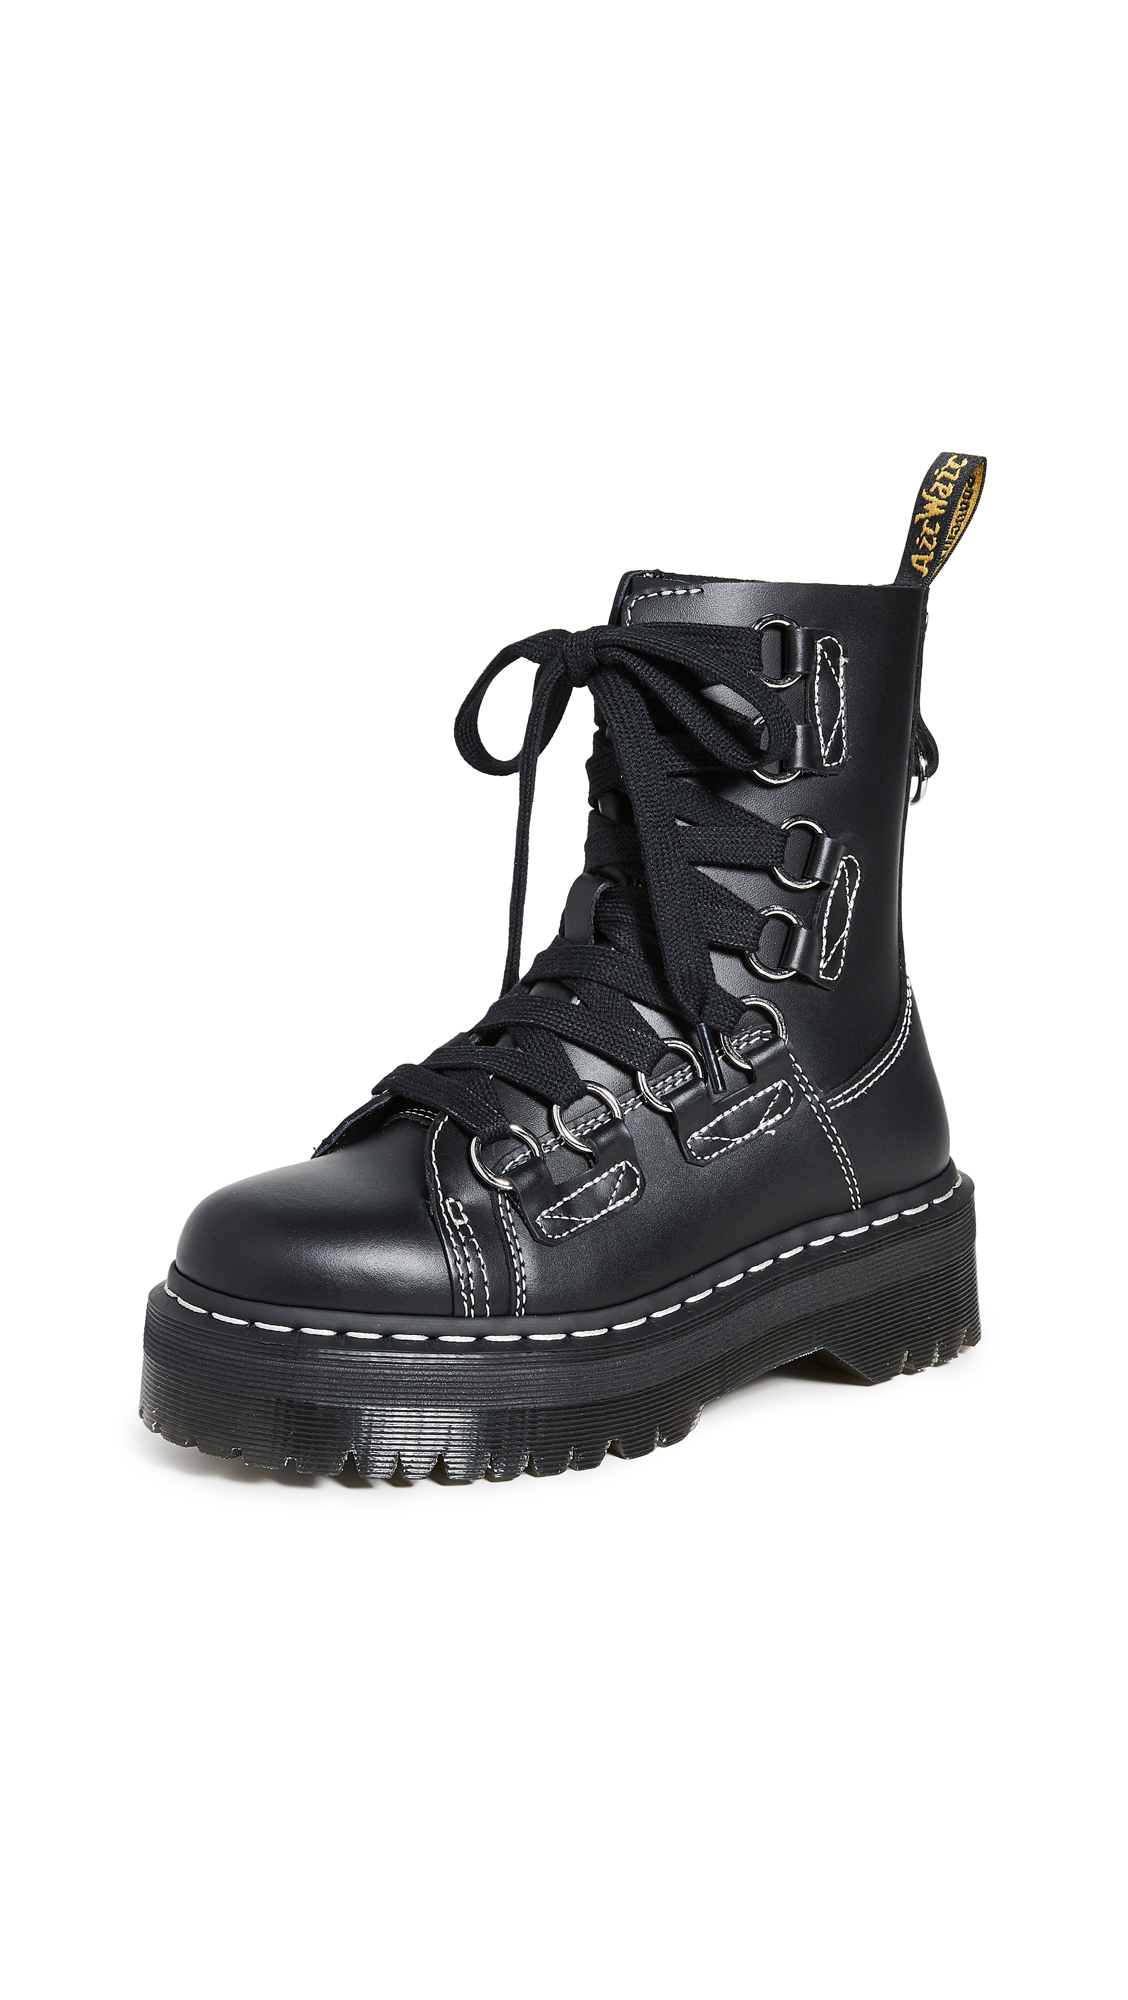 Buy Dr. Martens Jadon XL 8 Eye Boots online, shop Dr. Martens